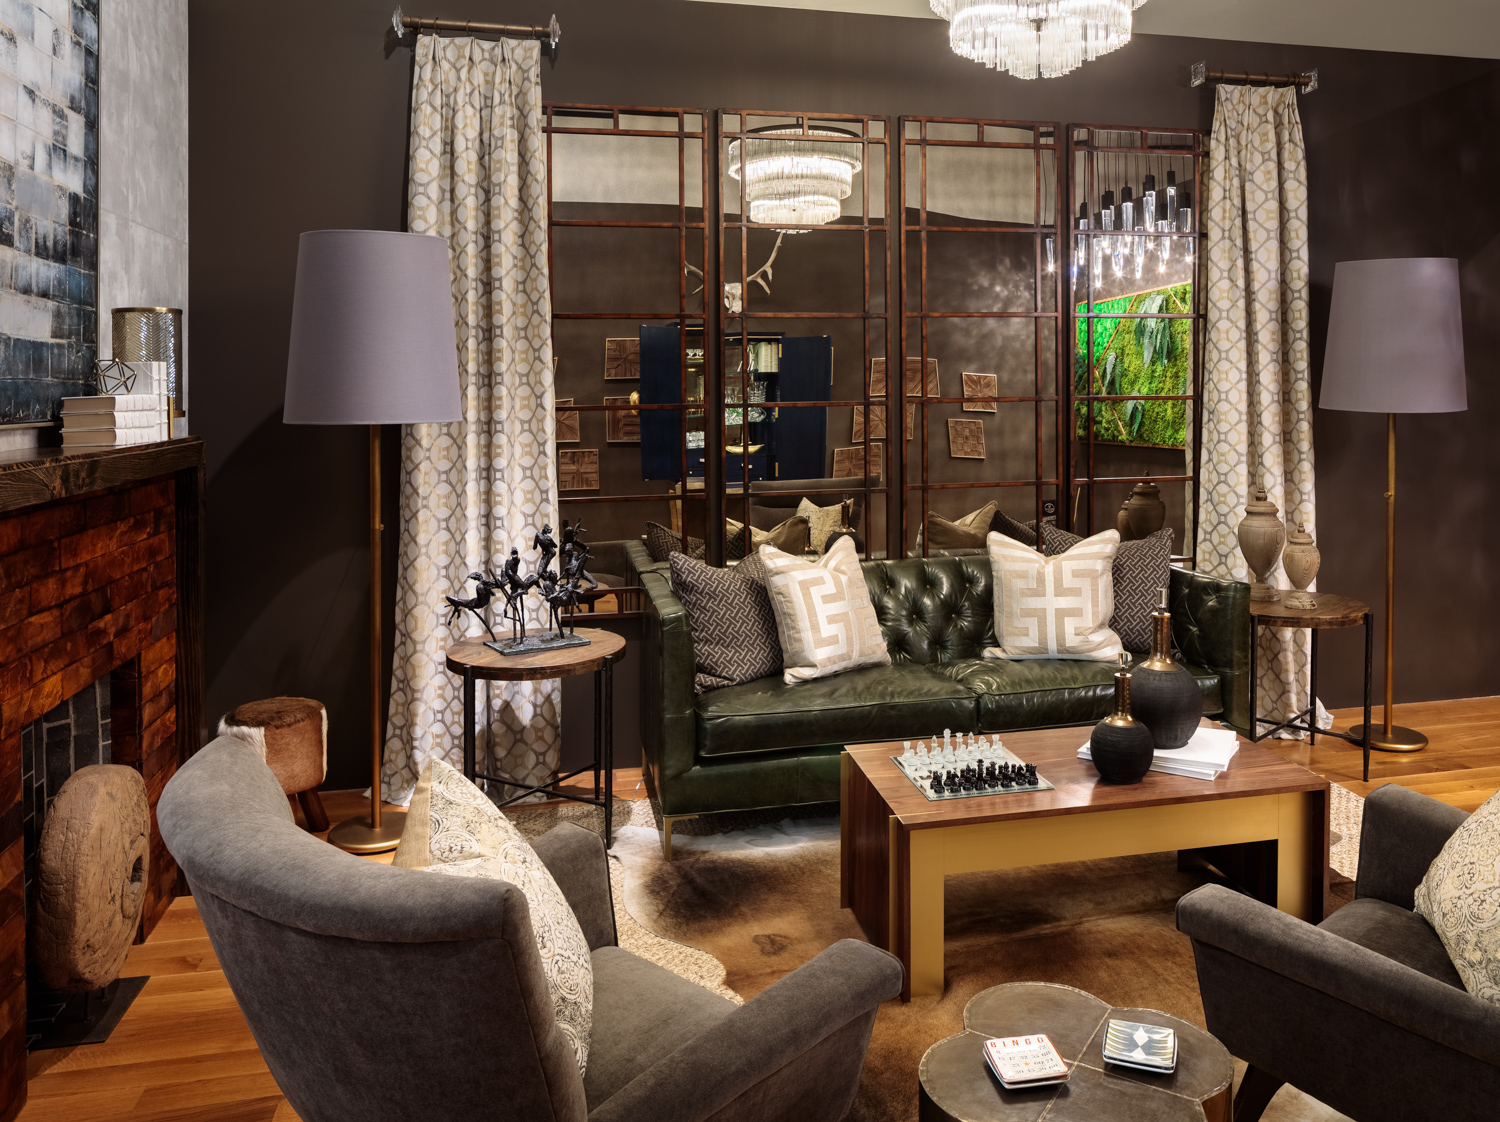 Game Room by Kim Pheiffer, KPDesigns and Associates